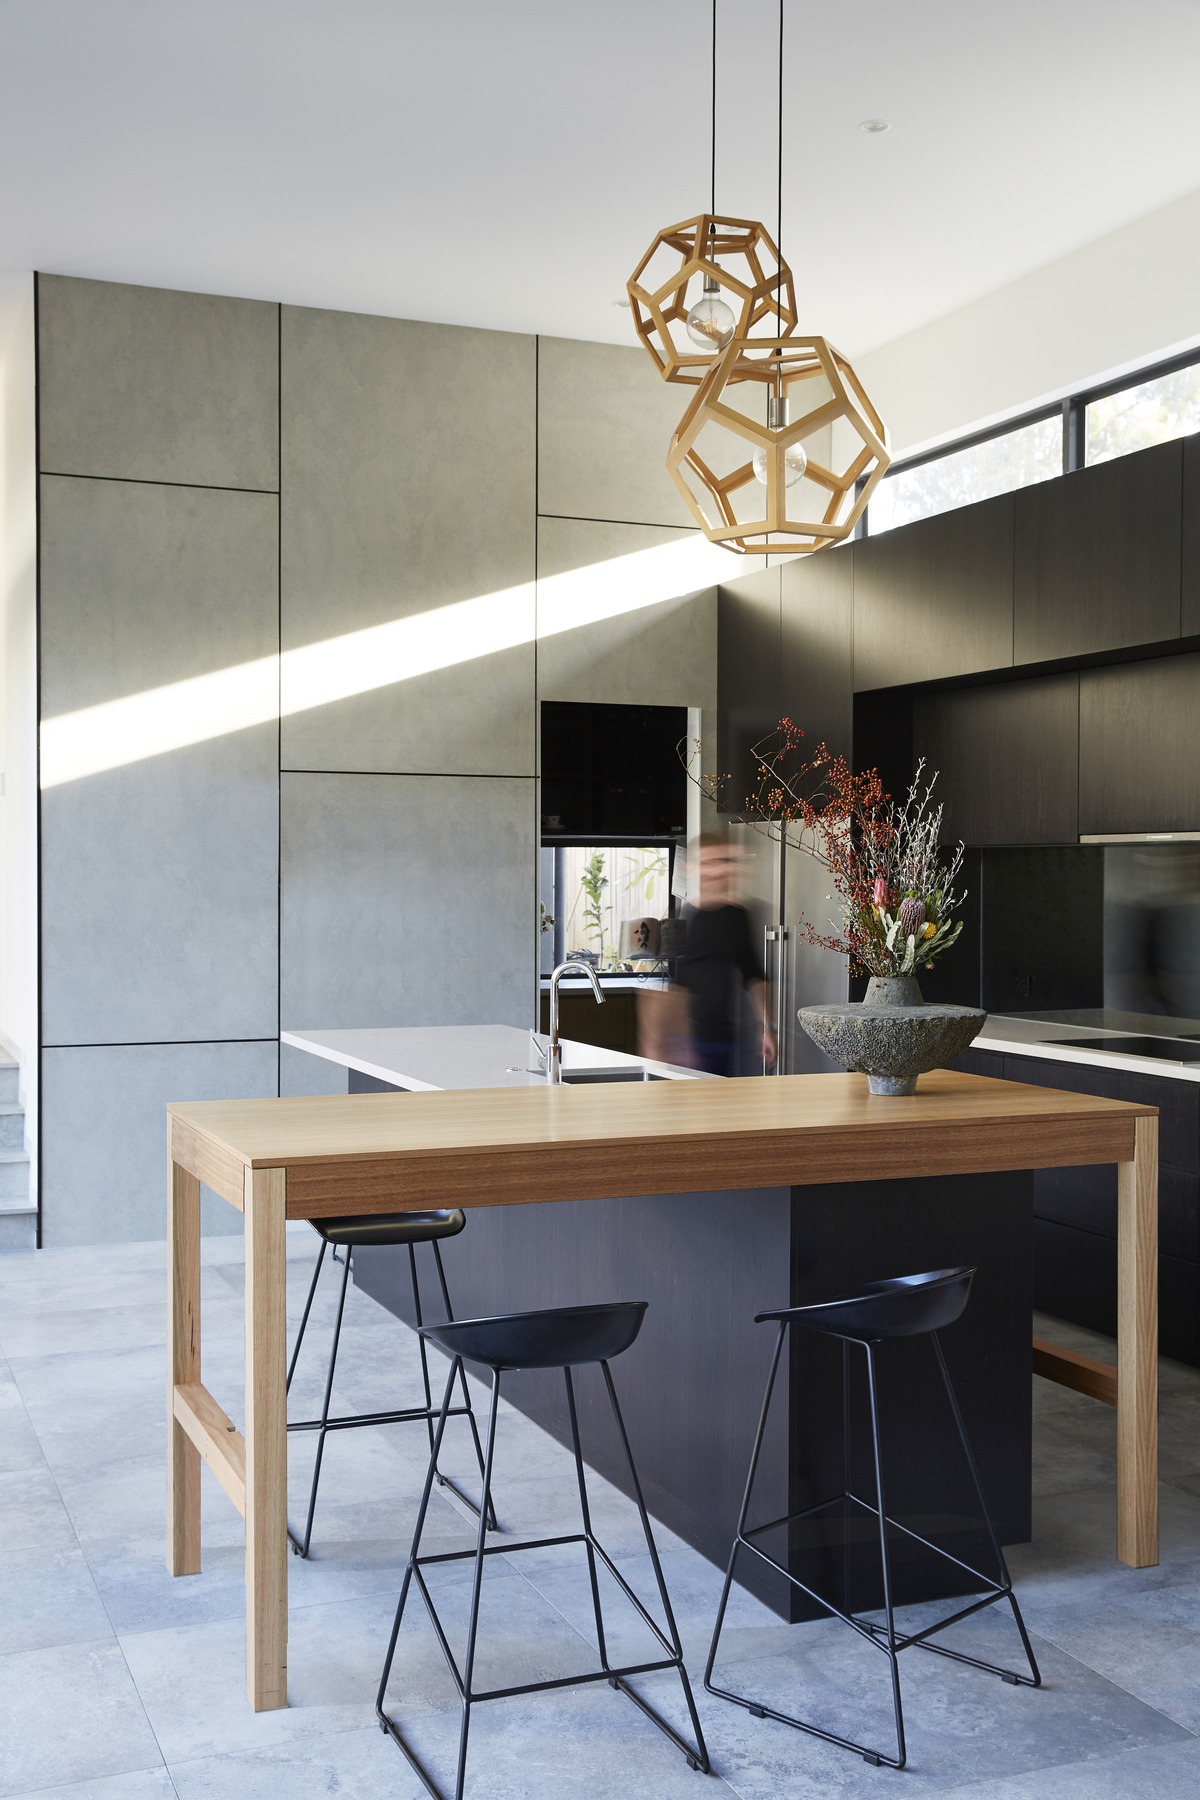 The kitchen in the Coorparoo House